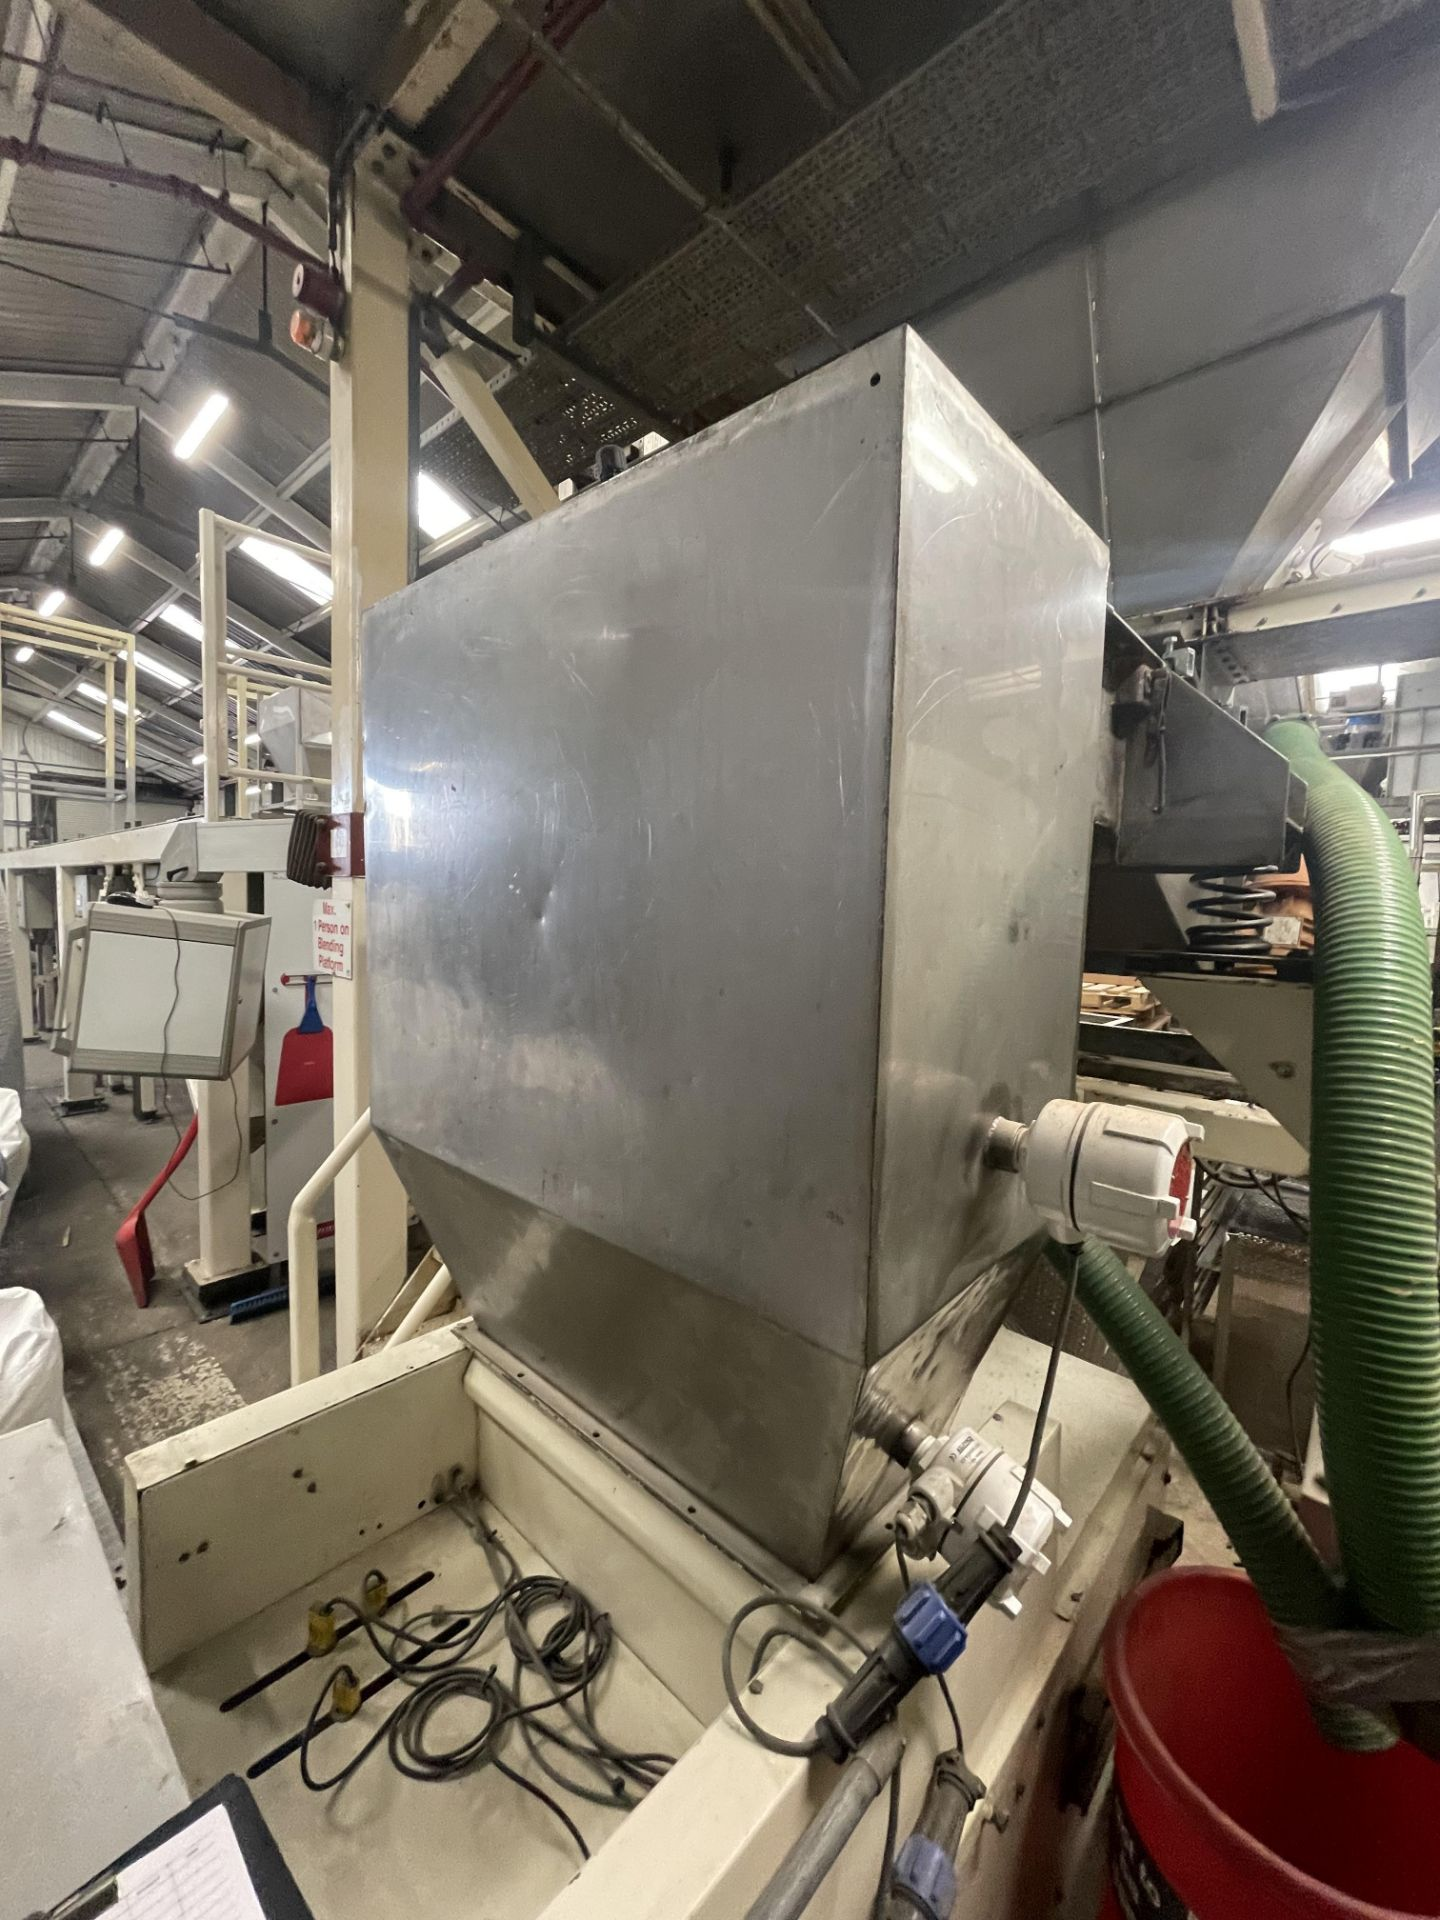 Pet Food Blending Line c/w Wynveen PM 750LH Stainless Steel Double Shaft Paddle Mixer - Image 41 of 63